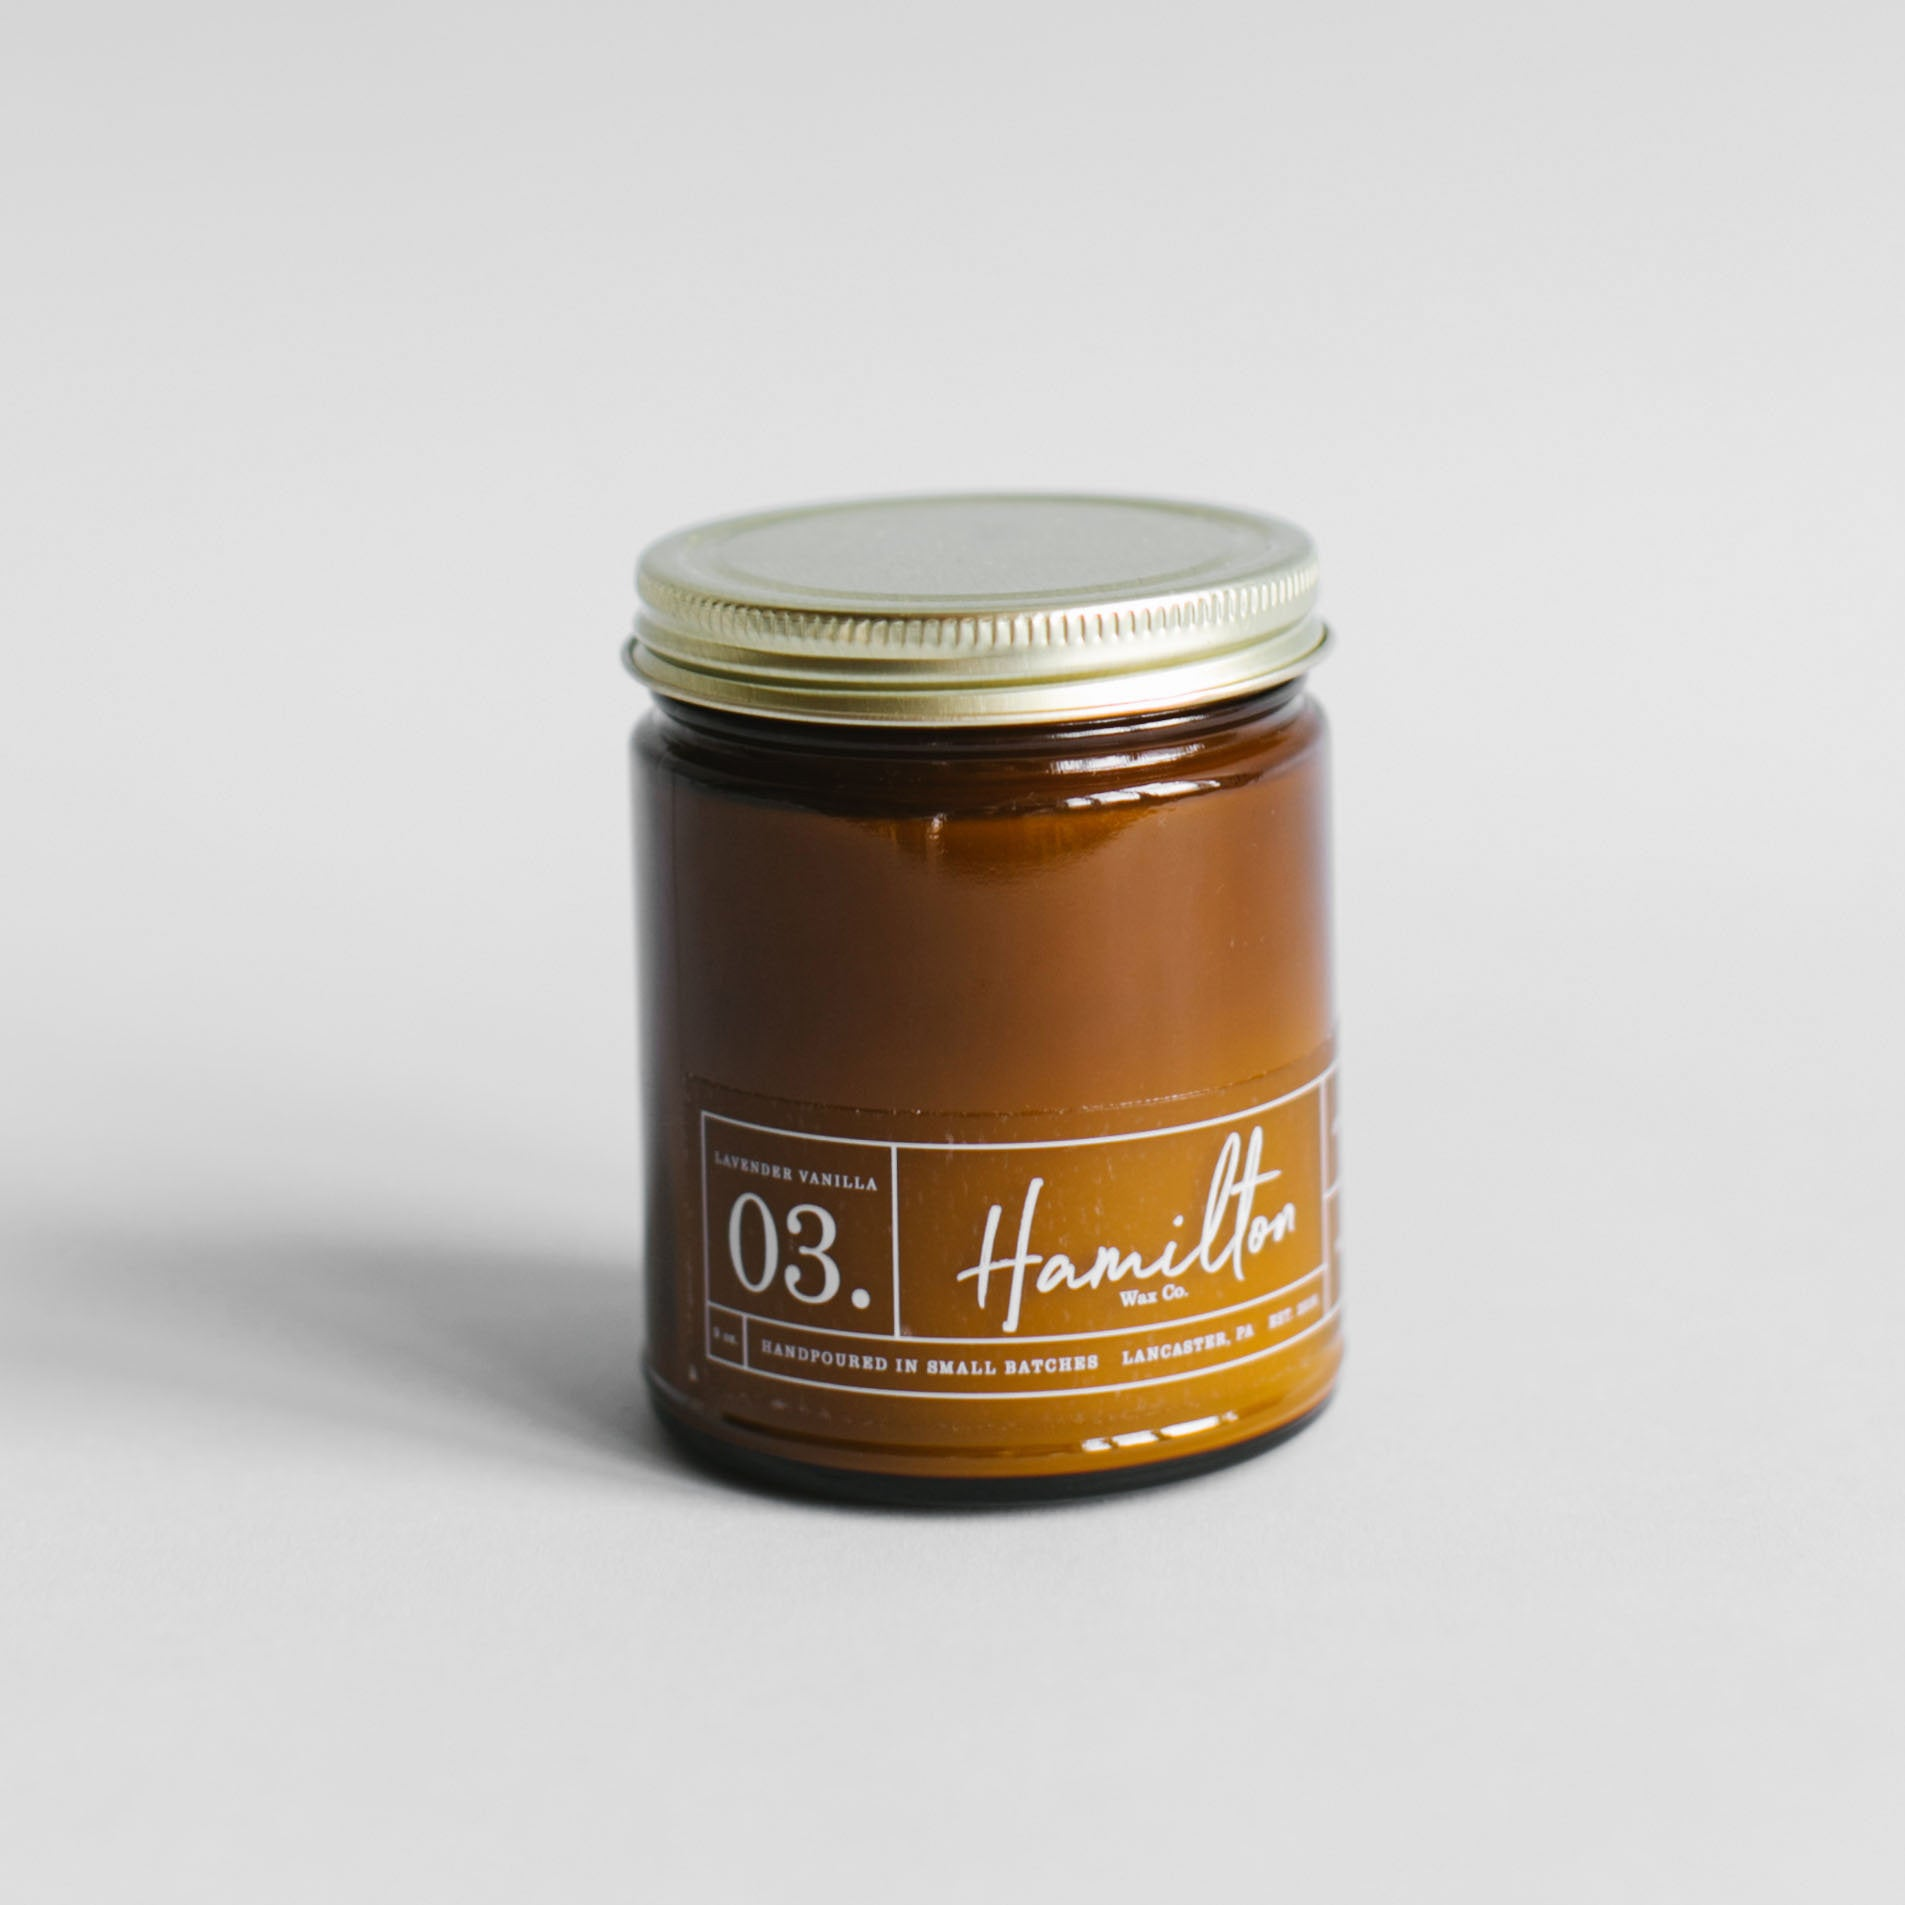 Hamilton Wax Co. - 03 Lavender Vanilla Scented Candle - Amber Glass Jar